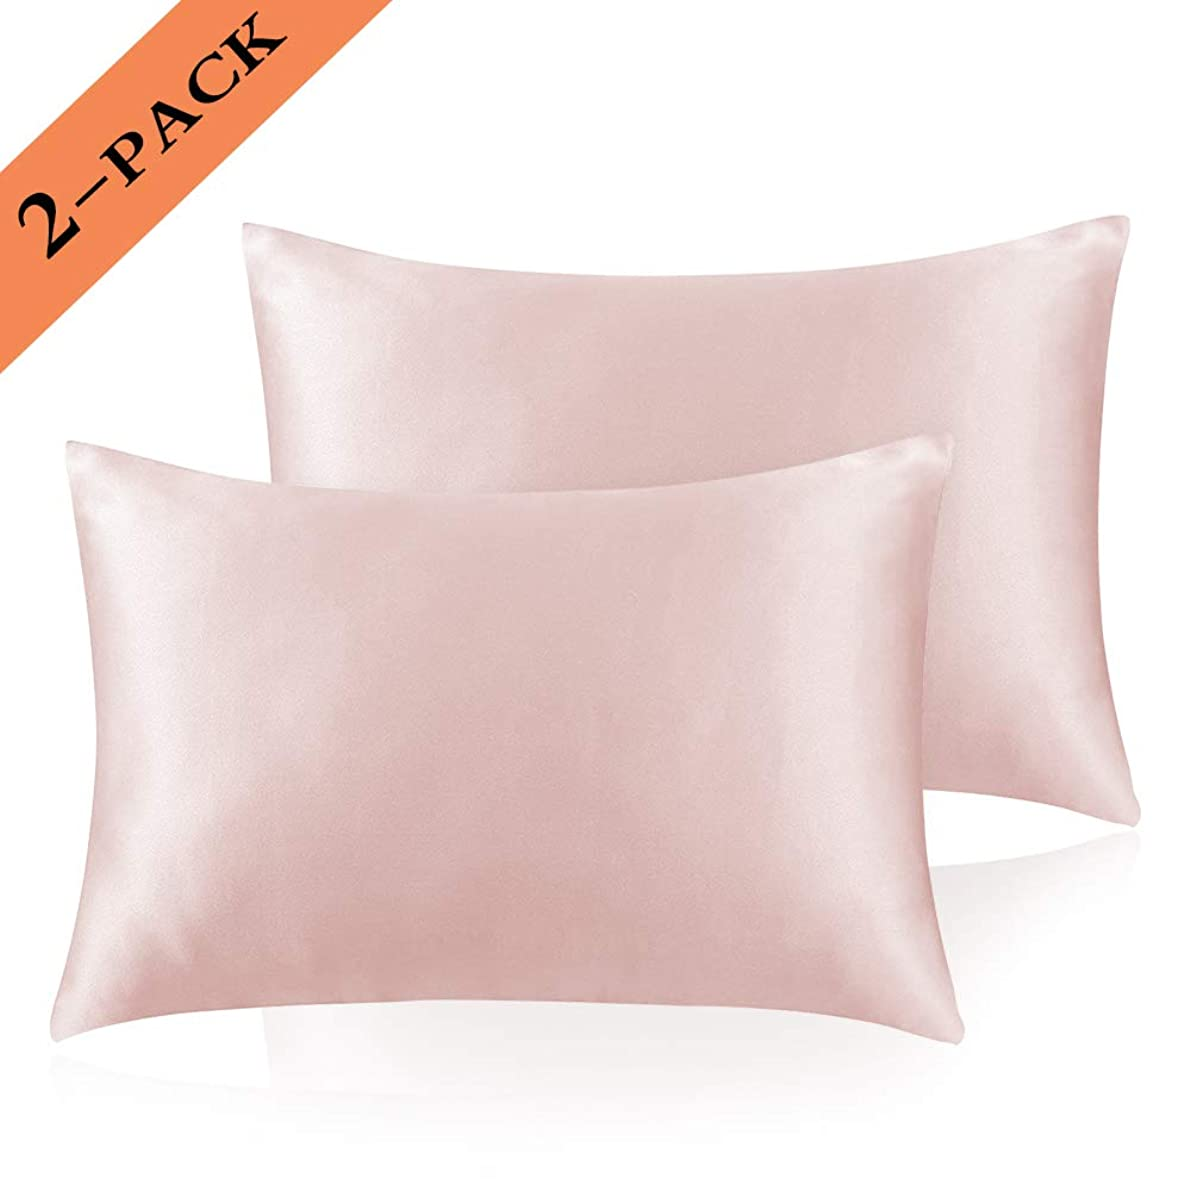 Ravmix Standard Size Silky Soft Satin Pillowcases for Hair and Skin Set of 2 Pillow Covers with Envelope Closure, Hypoallergenic Anti-Wrinkle Beautiful Sleep, Machine Washable, 20''x26'', Rose Pink